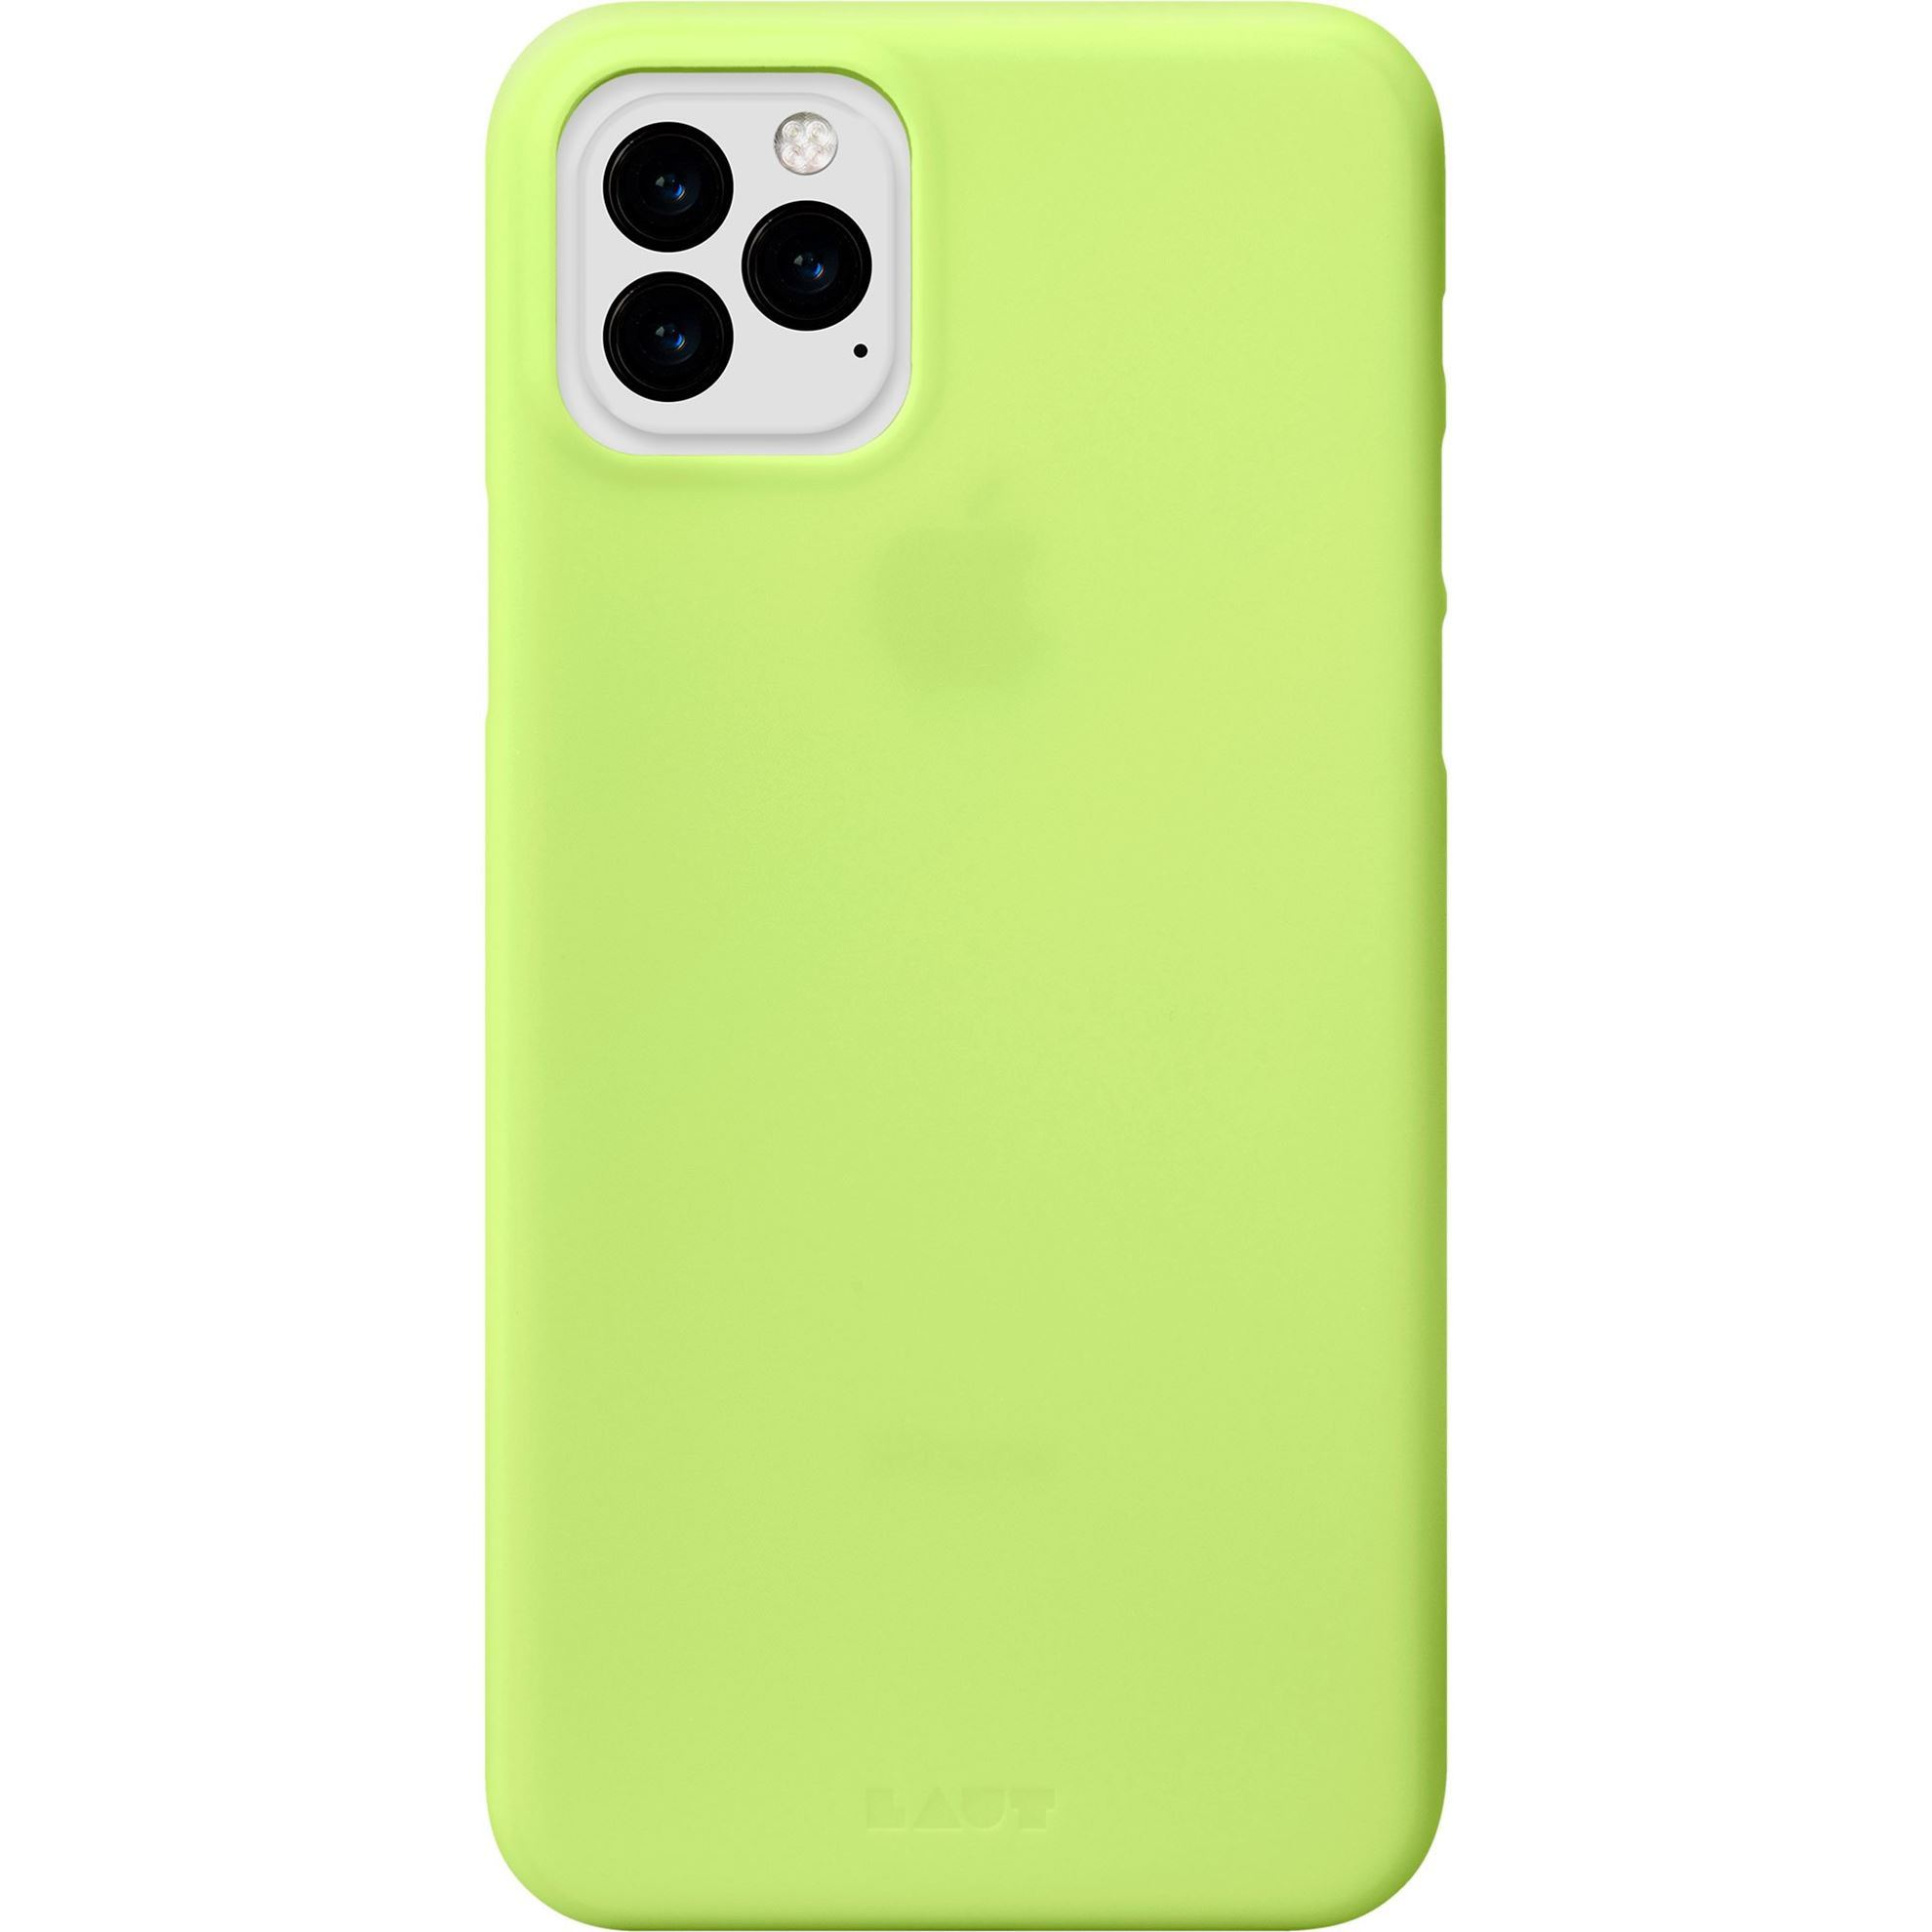 Picture of LAUT Slimskin for iPhone 11 / Pro / Pro Max